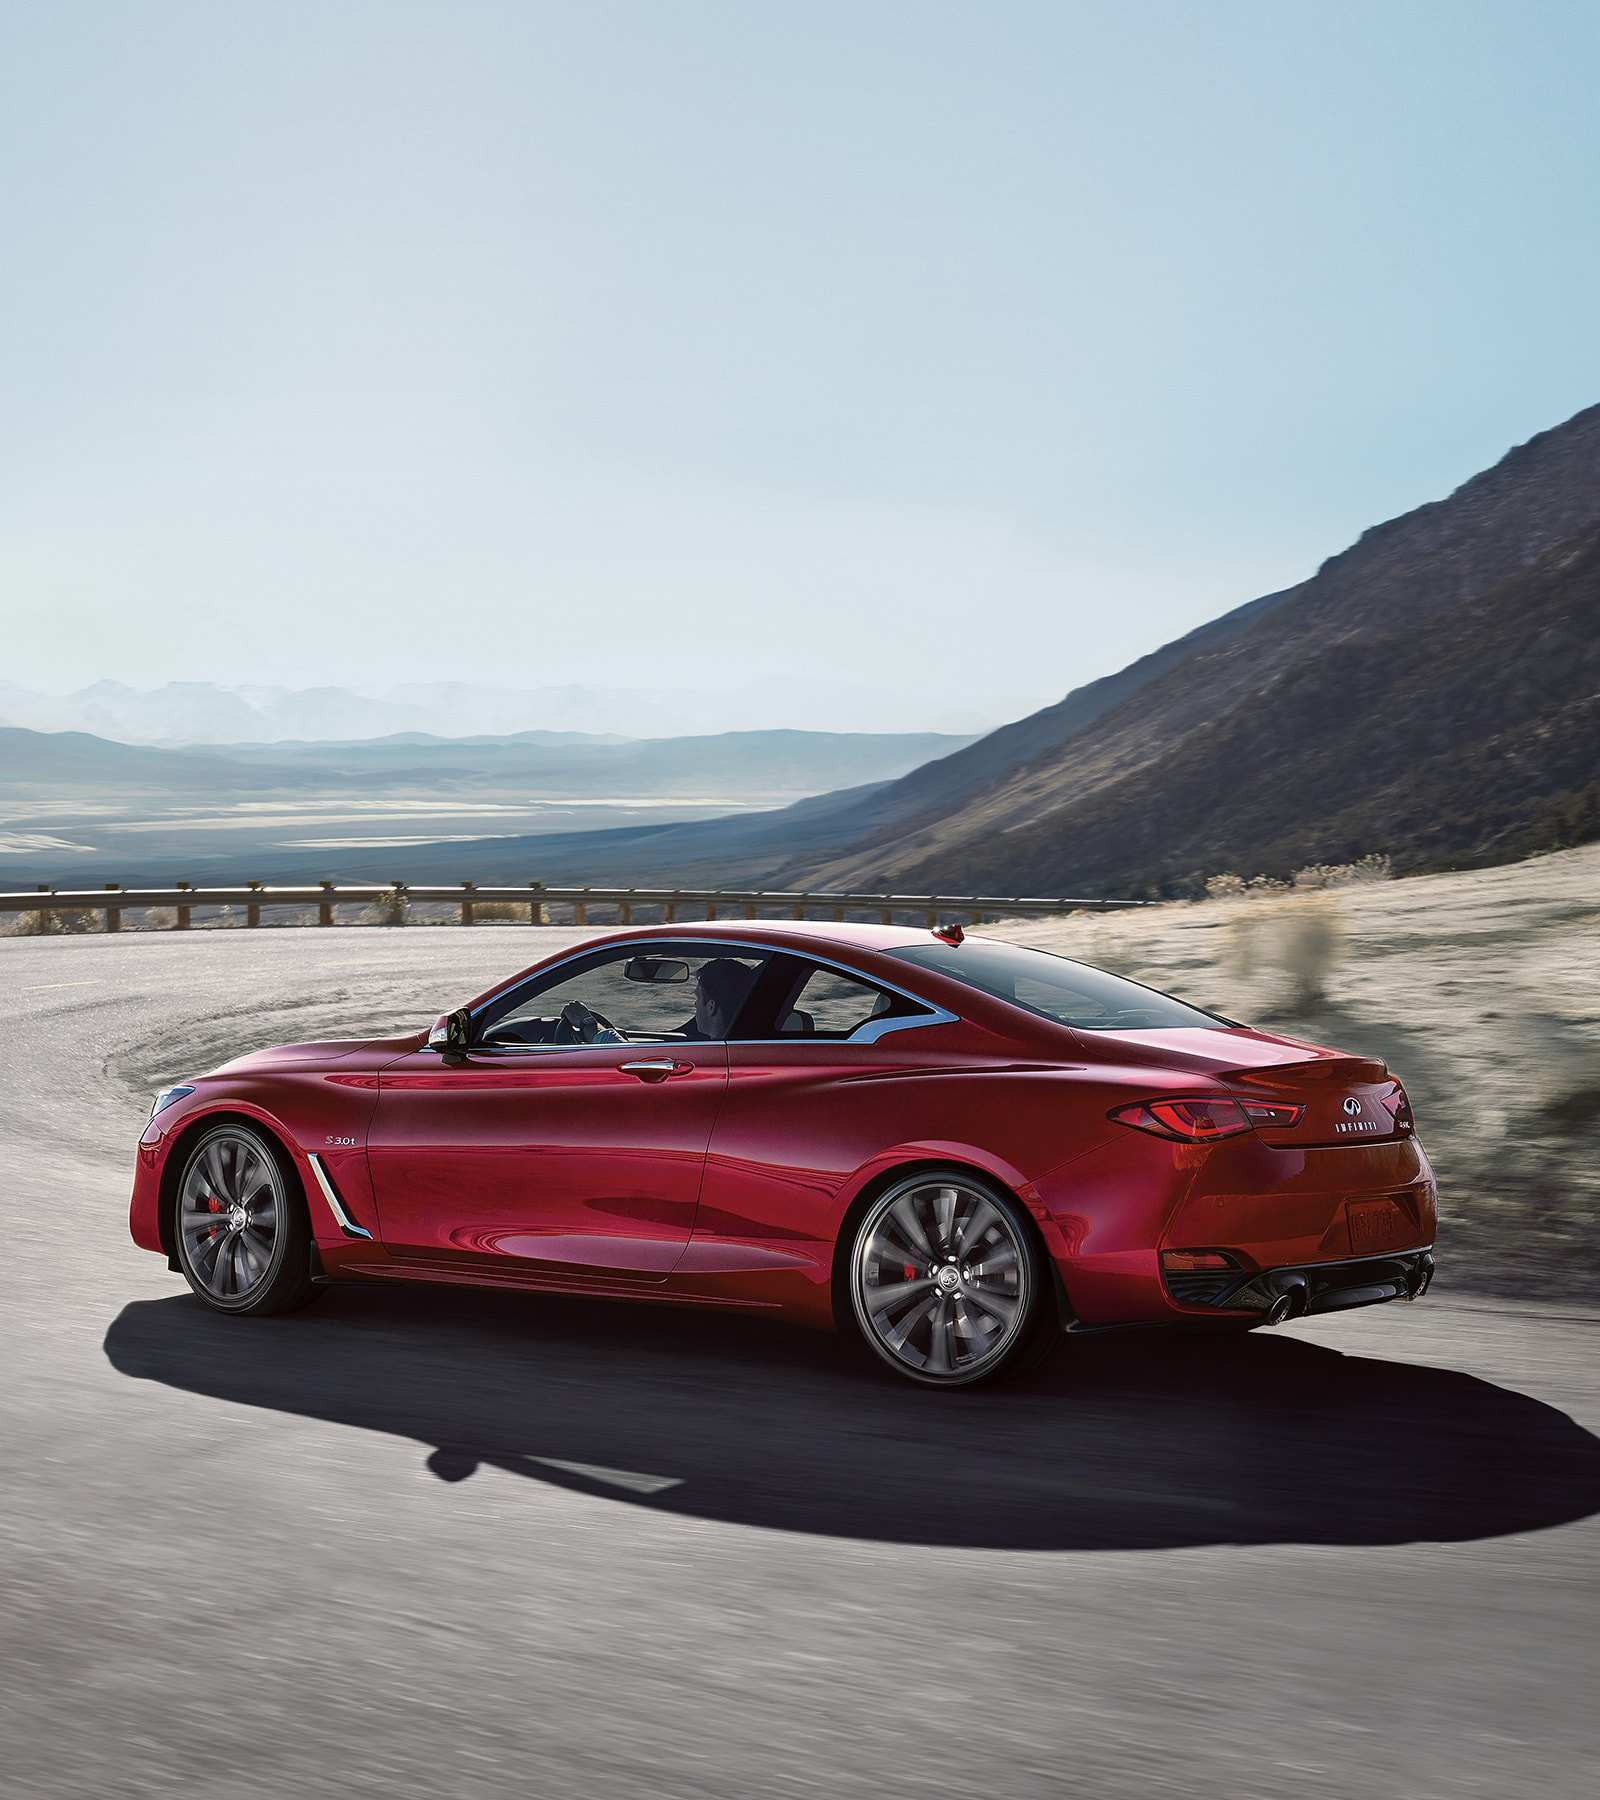 54 Gallery of Infiniti Q60 2020 Rumors by Infiniti Q60 2020